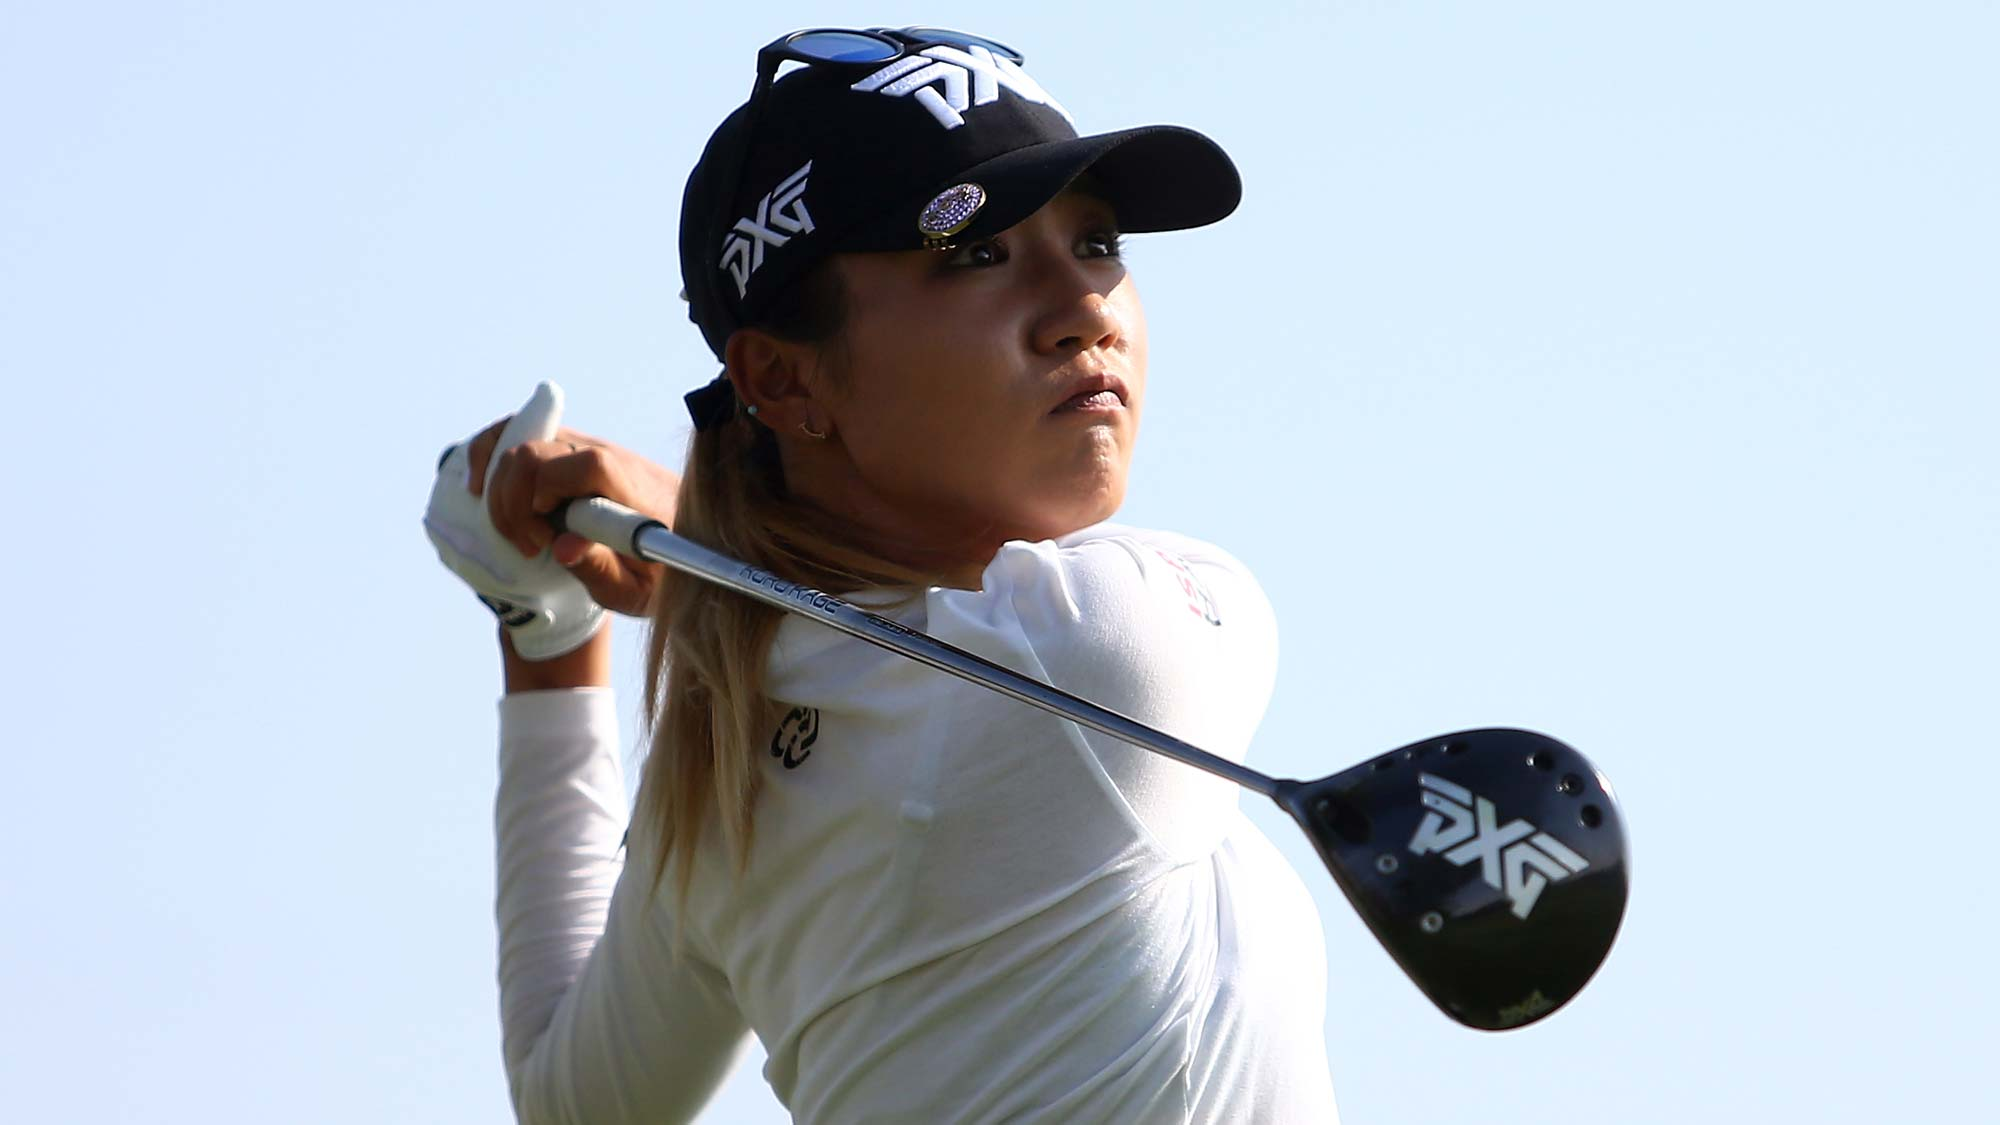 Lydia Ko of New Zealand hits her tee shot on the twelfth hole during the first round of the CP Womens Open